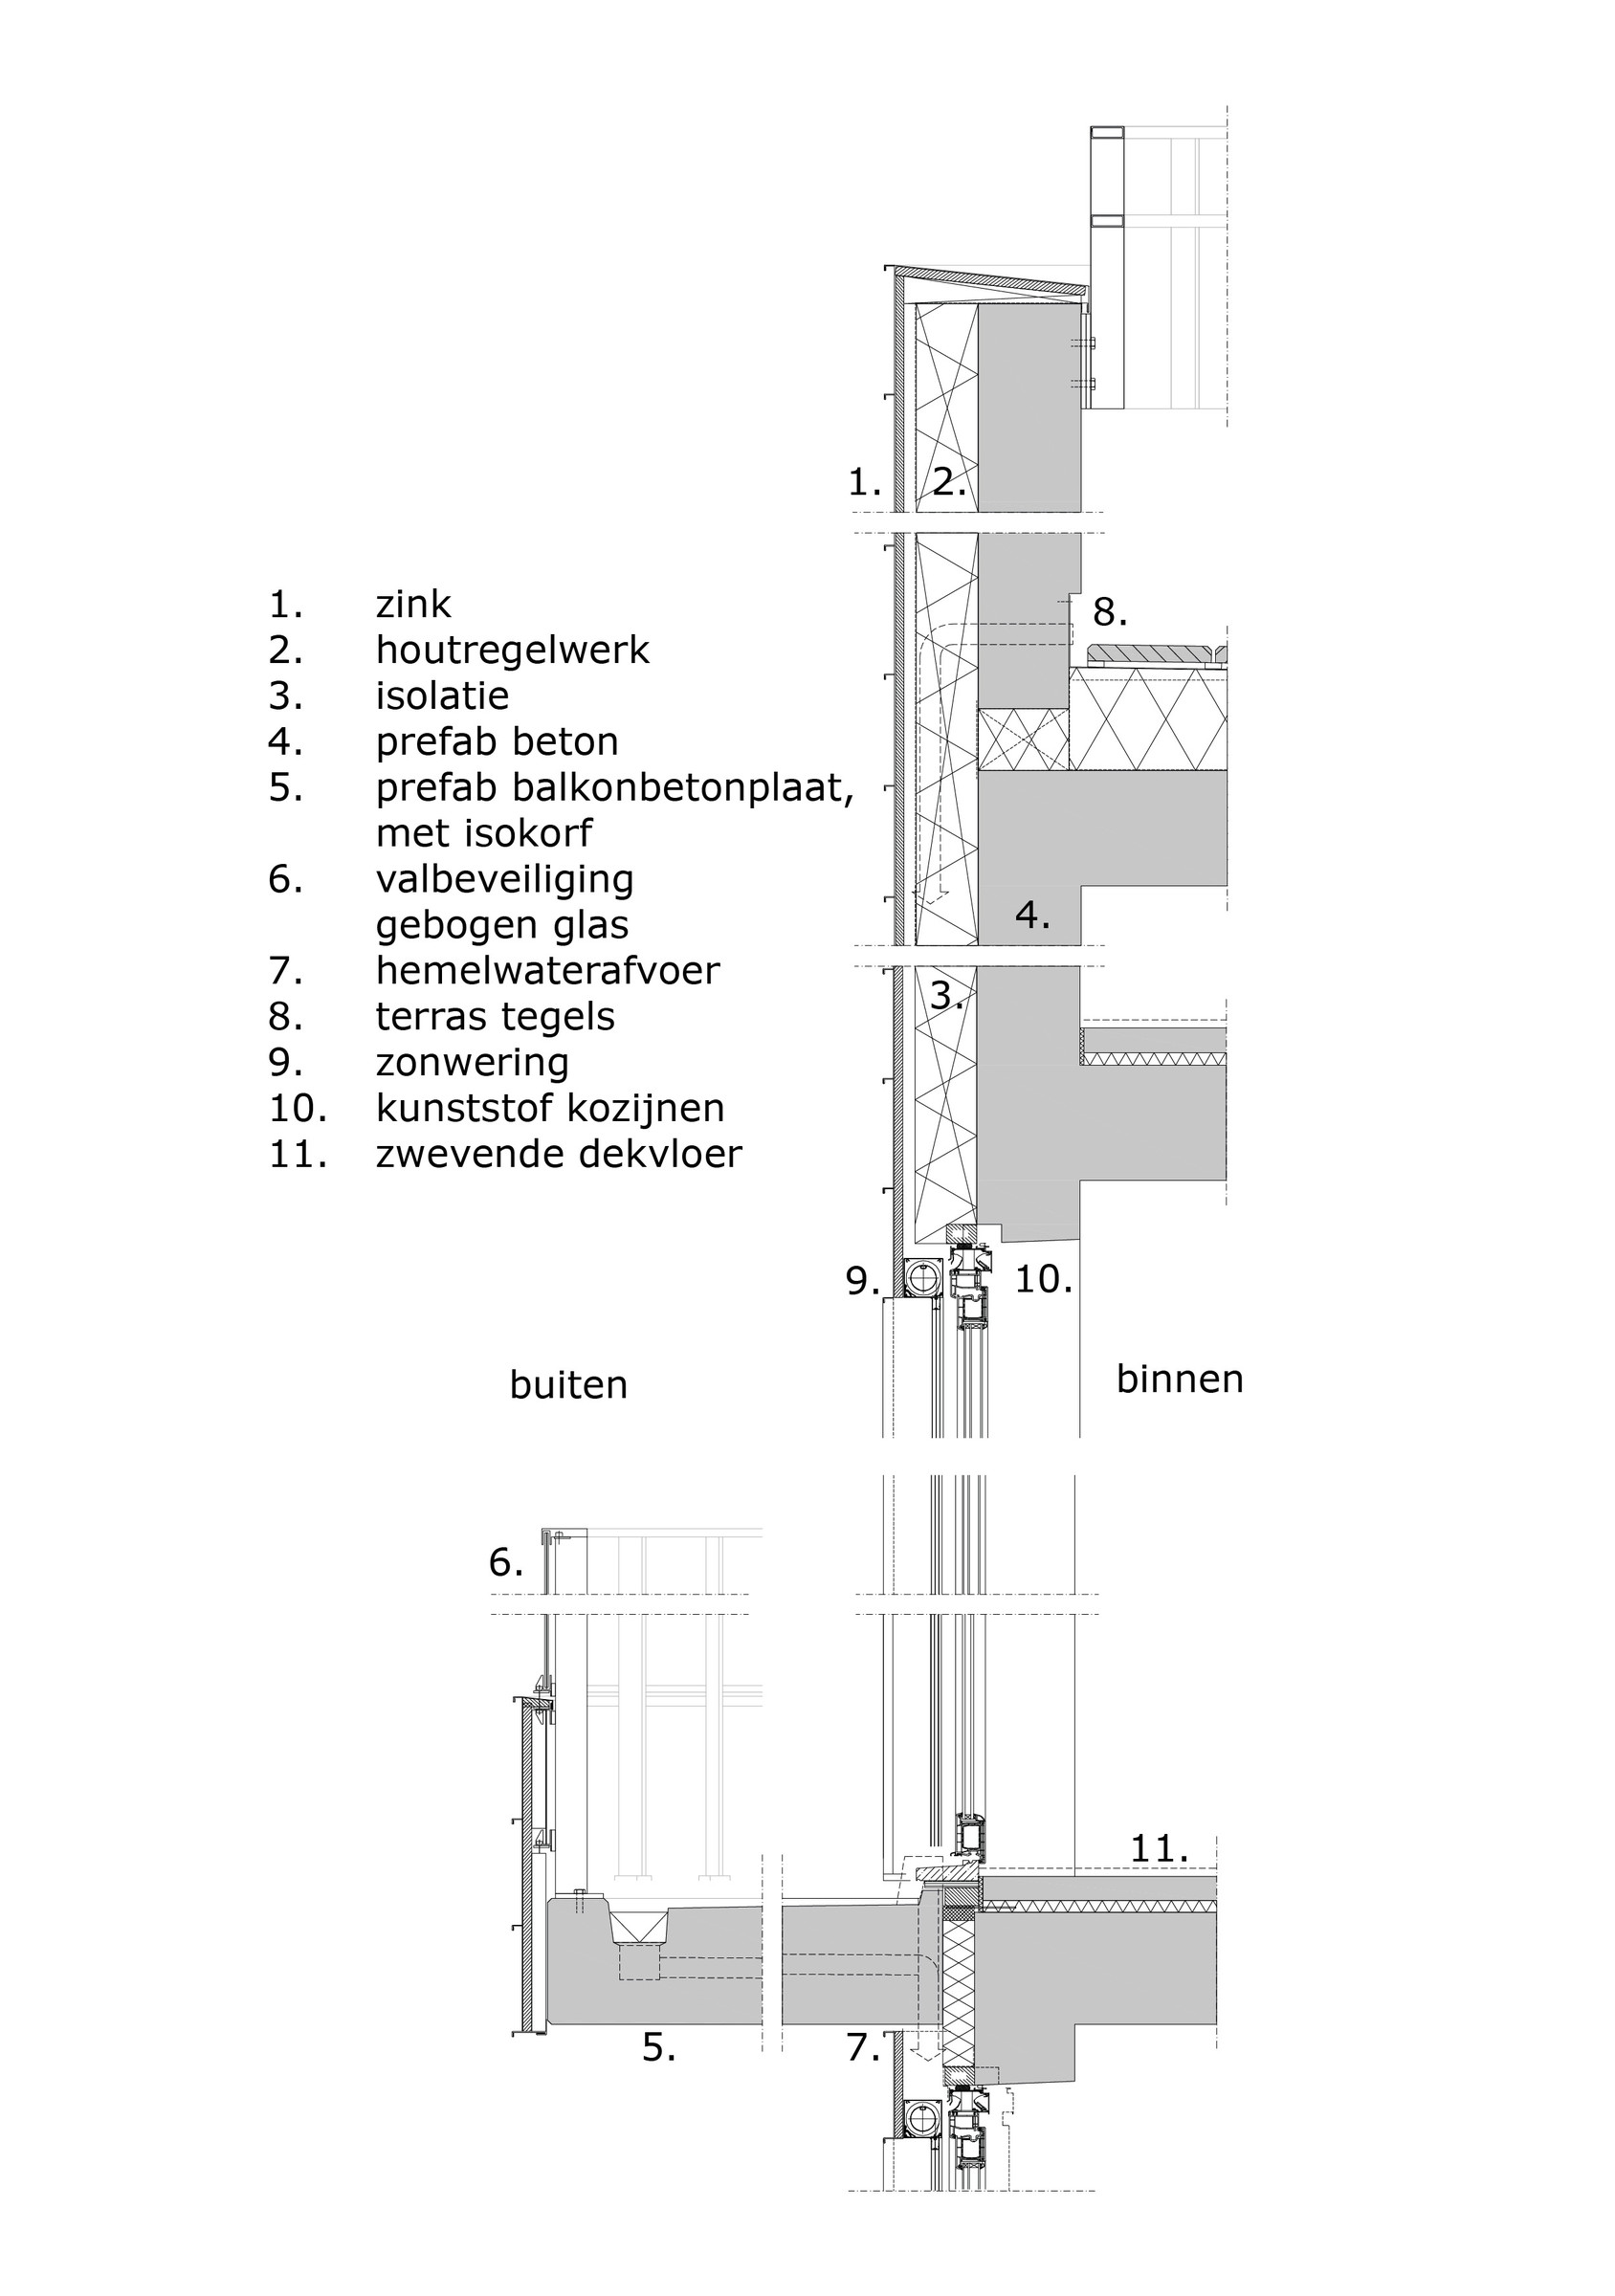 Zecc_Architecten-housing-Meysters_Buiten-zinc-facad.jpg